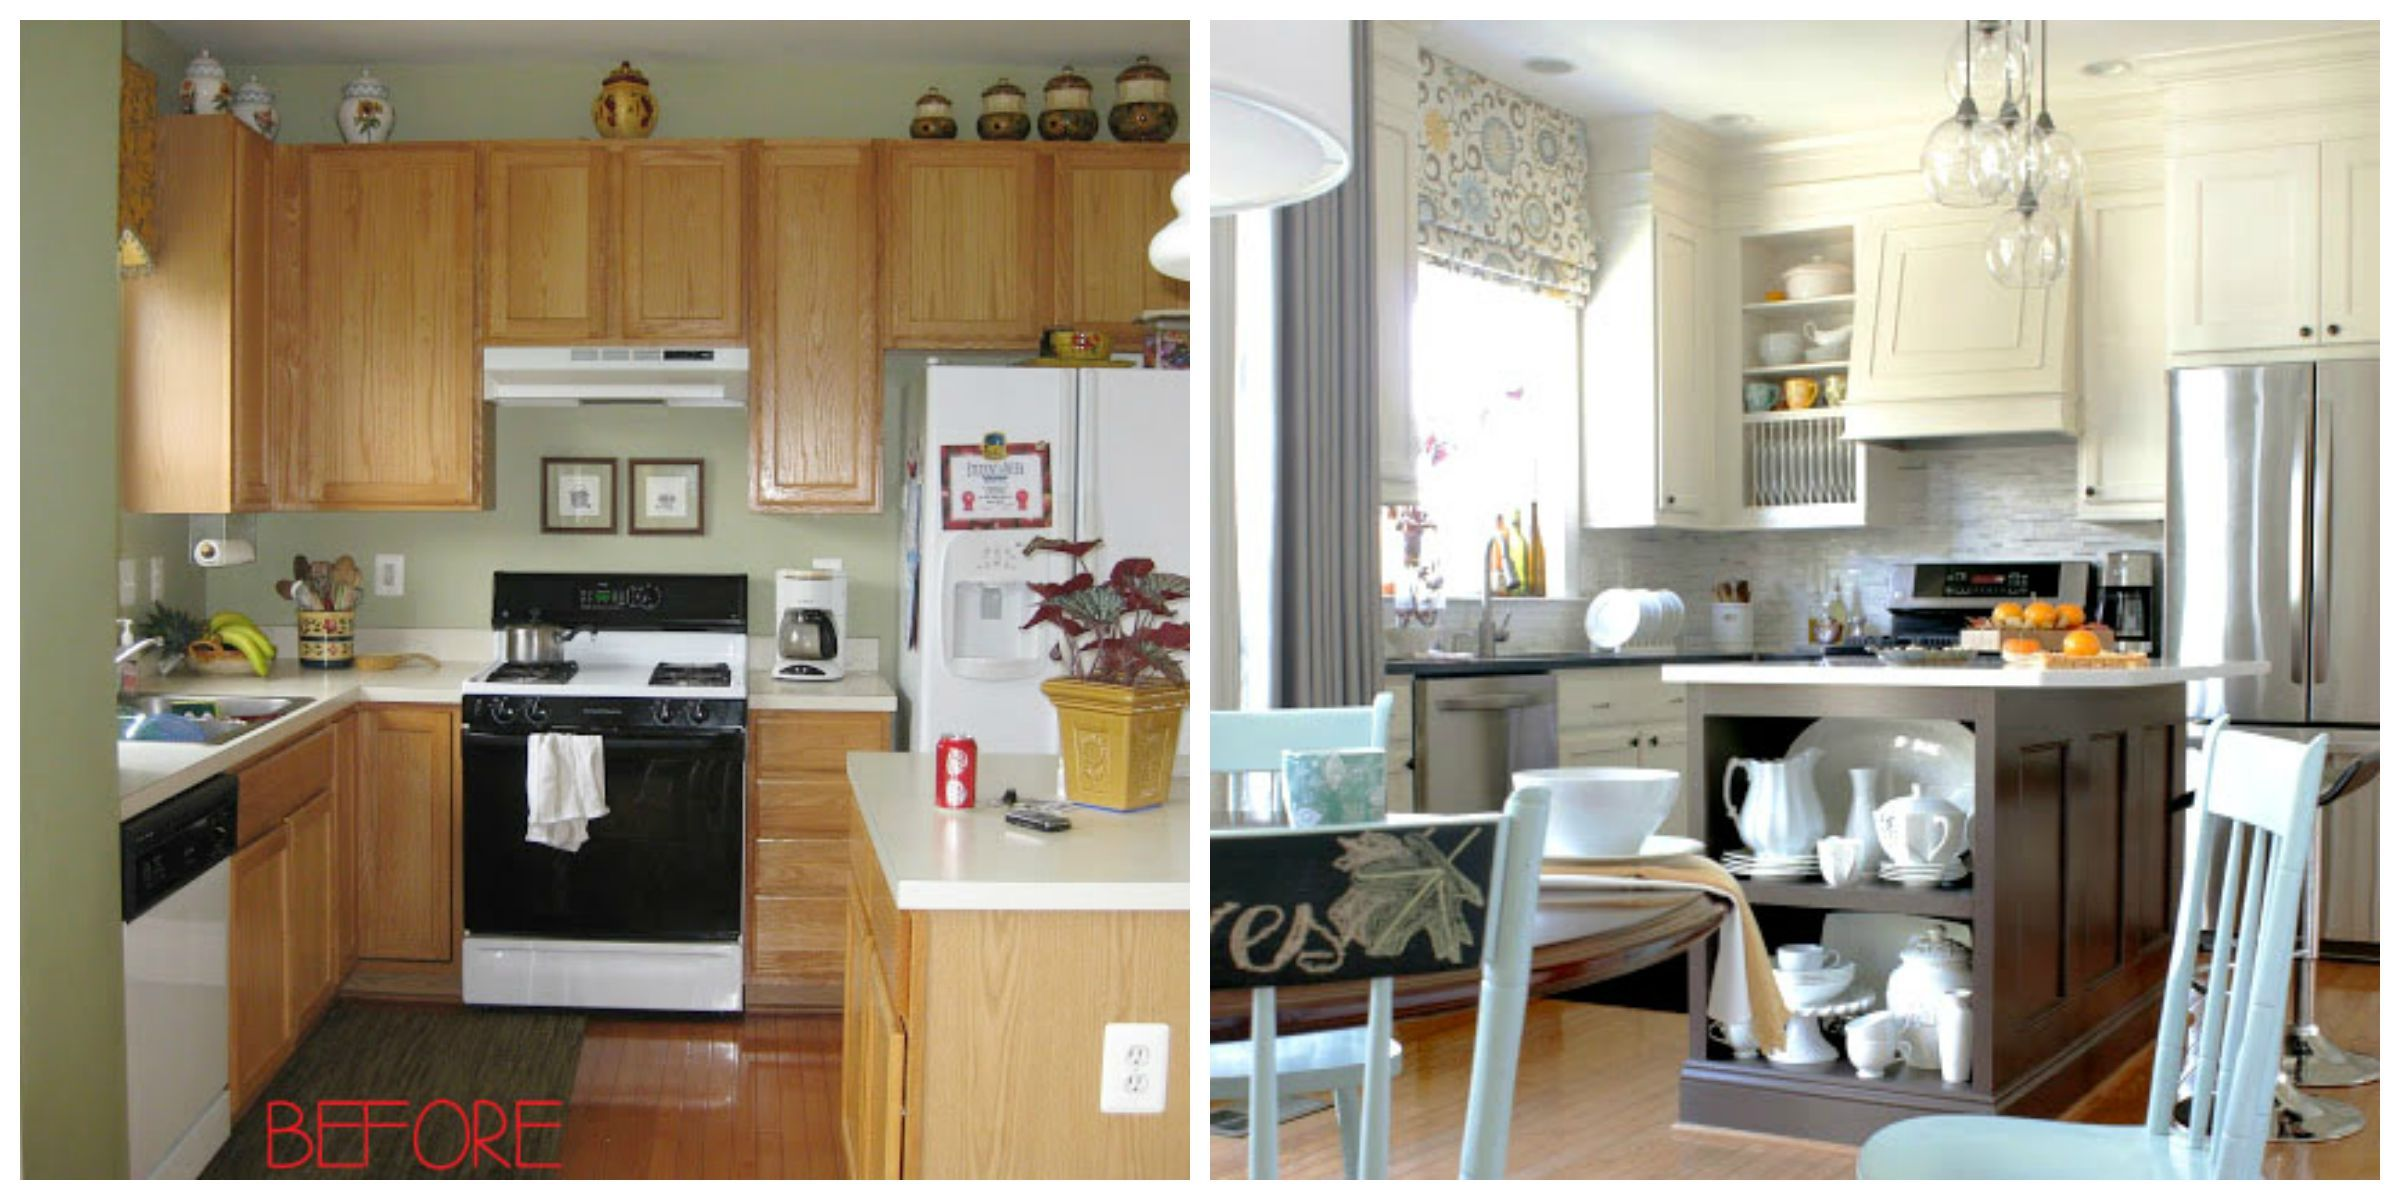 Diy Extend Kitchen Cabinets 10 Cheap Ways To Make Your Home Look More Expensive